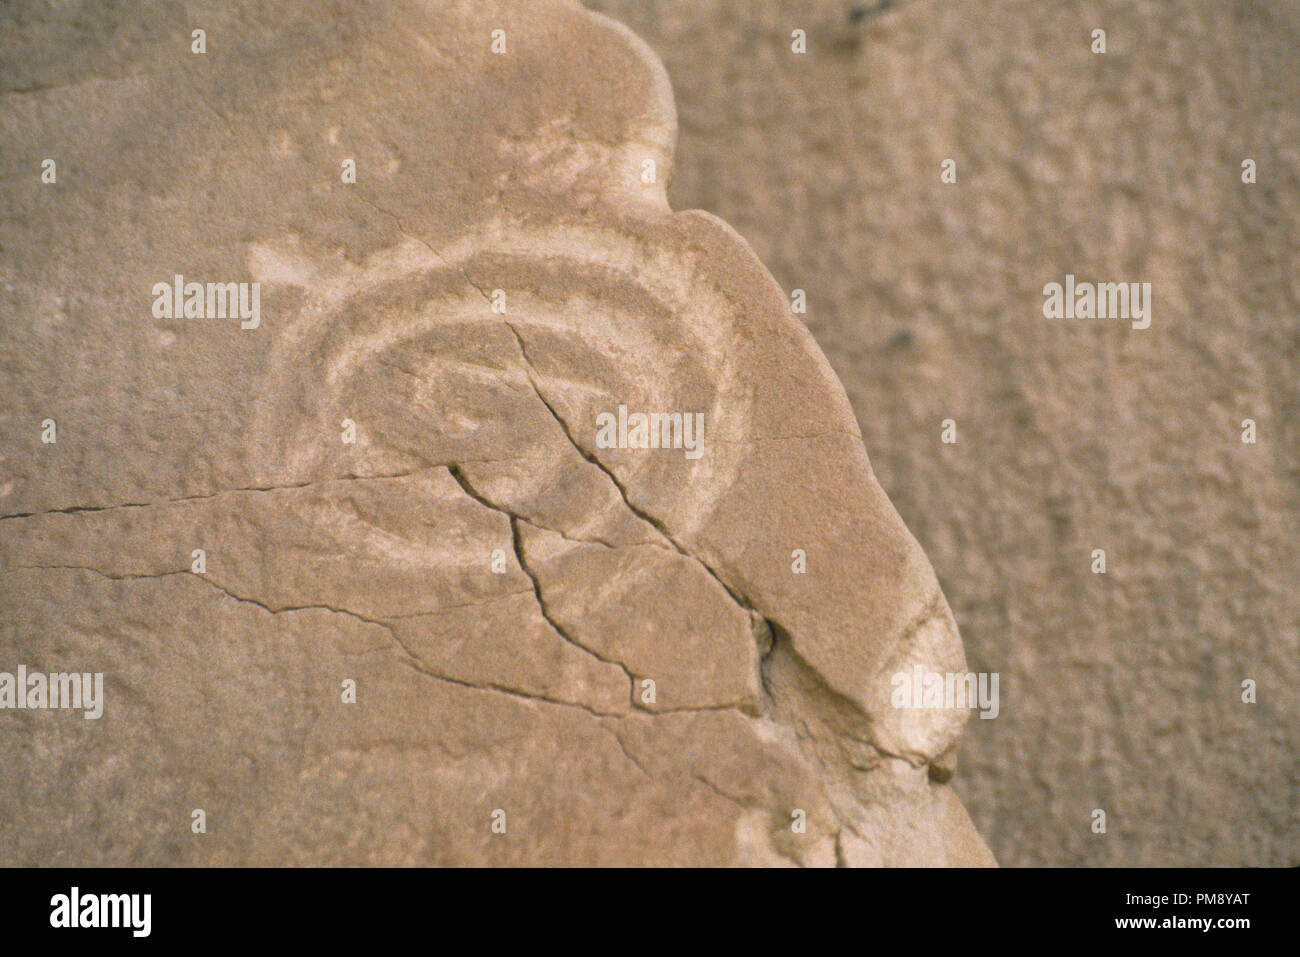 Petroglyph at Chaco Canyon, Anasazi site in New Mexico. Photograph Stock Photo